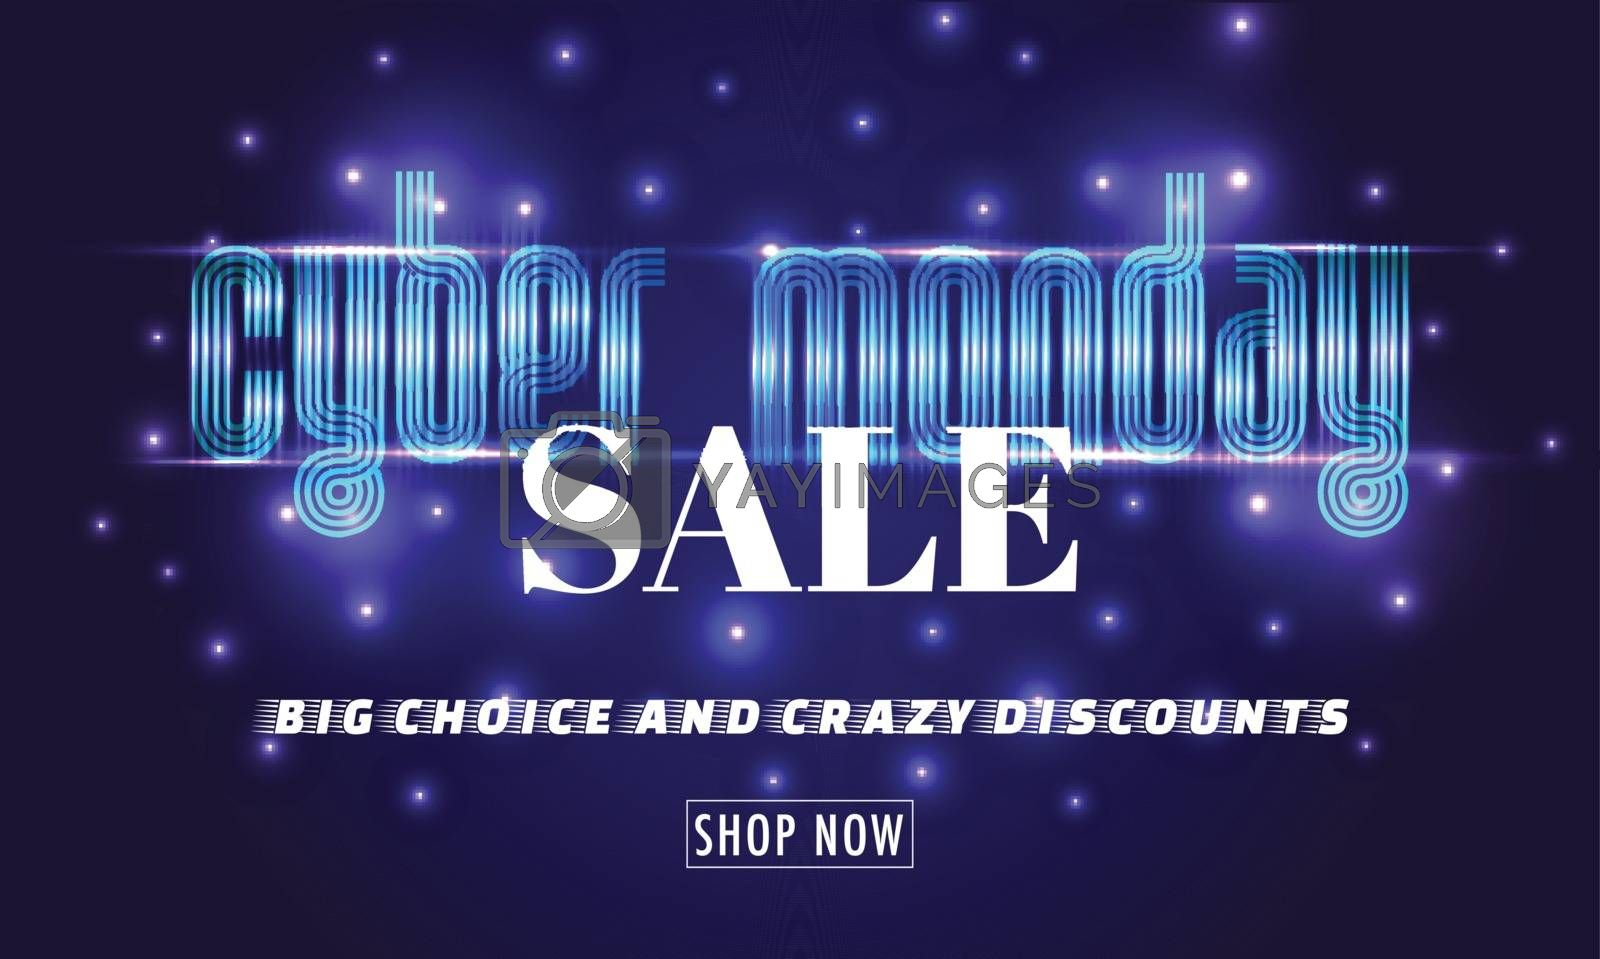 Website poster or banner design with creative lettering of Cyber Monday Sale on glowing purple background.